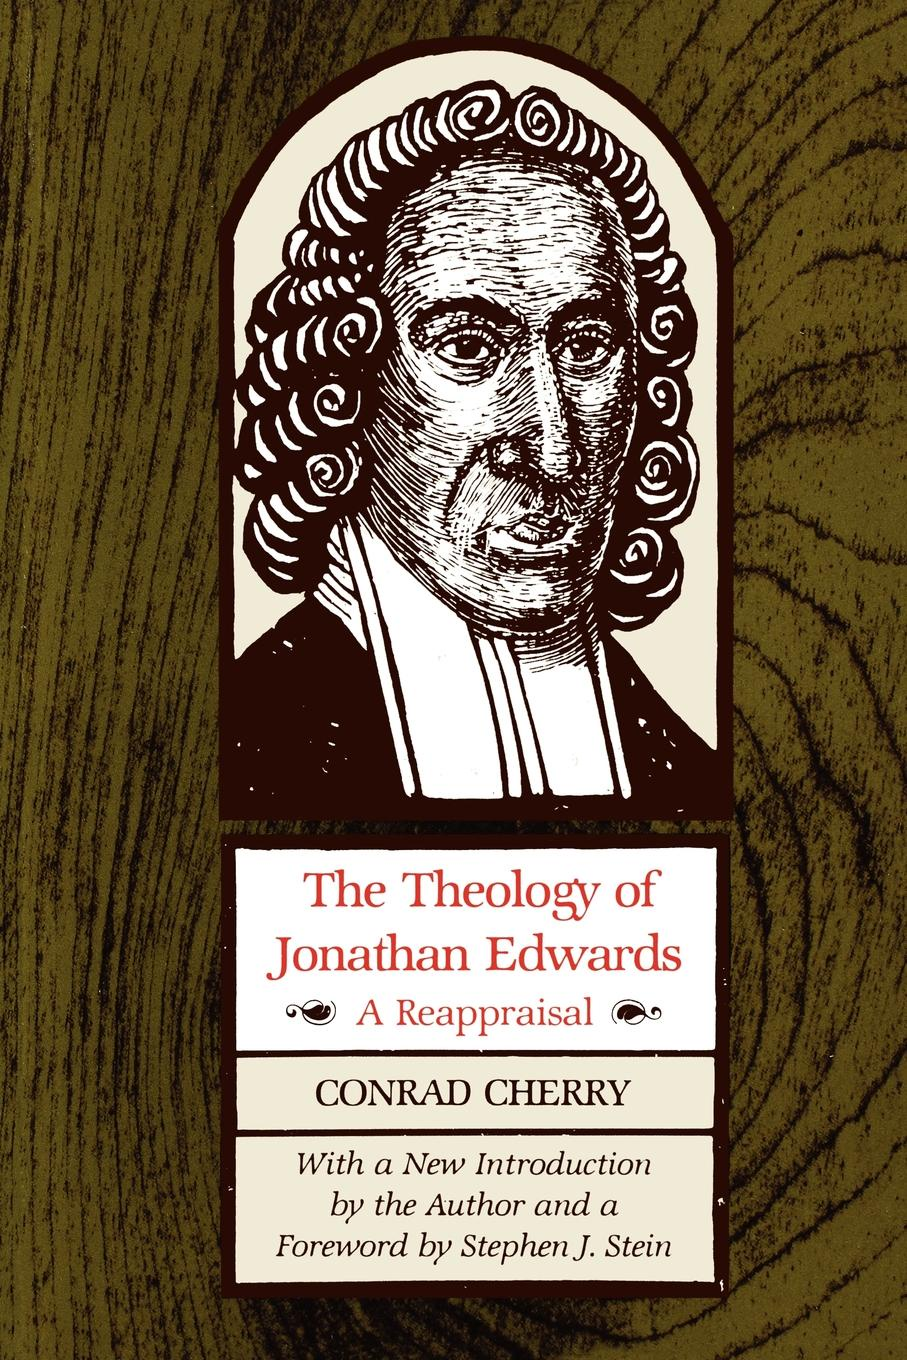 Conrad Cherry The Theology of Jonathan Edwards. A Reappraisal